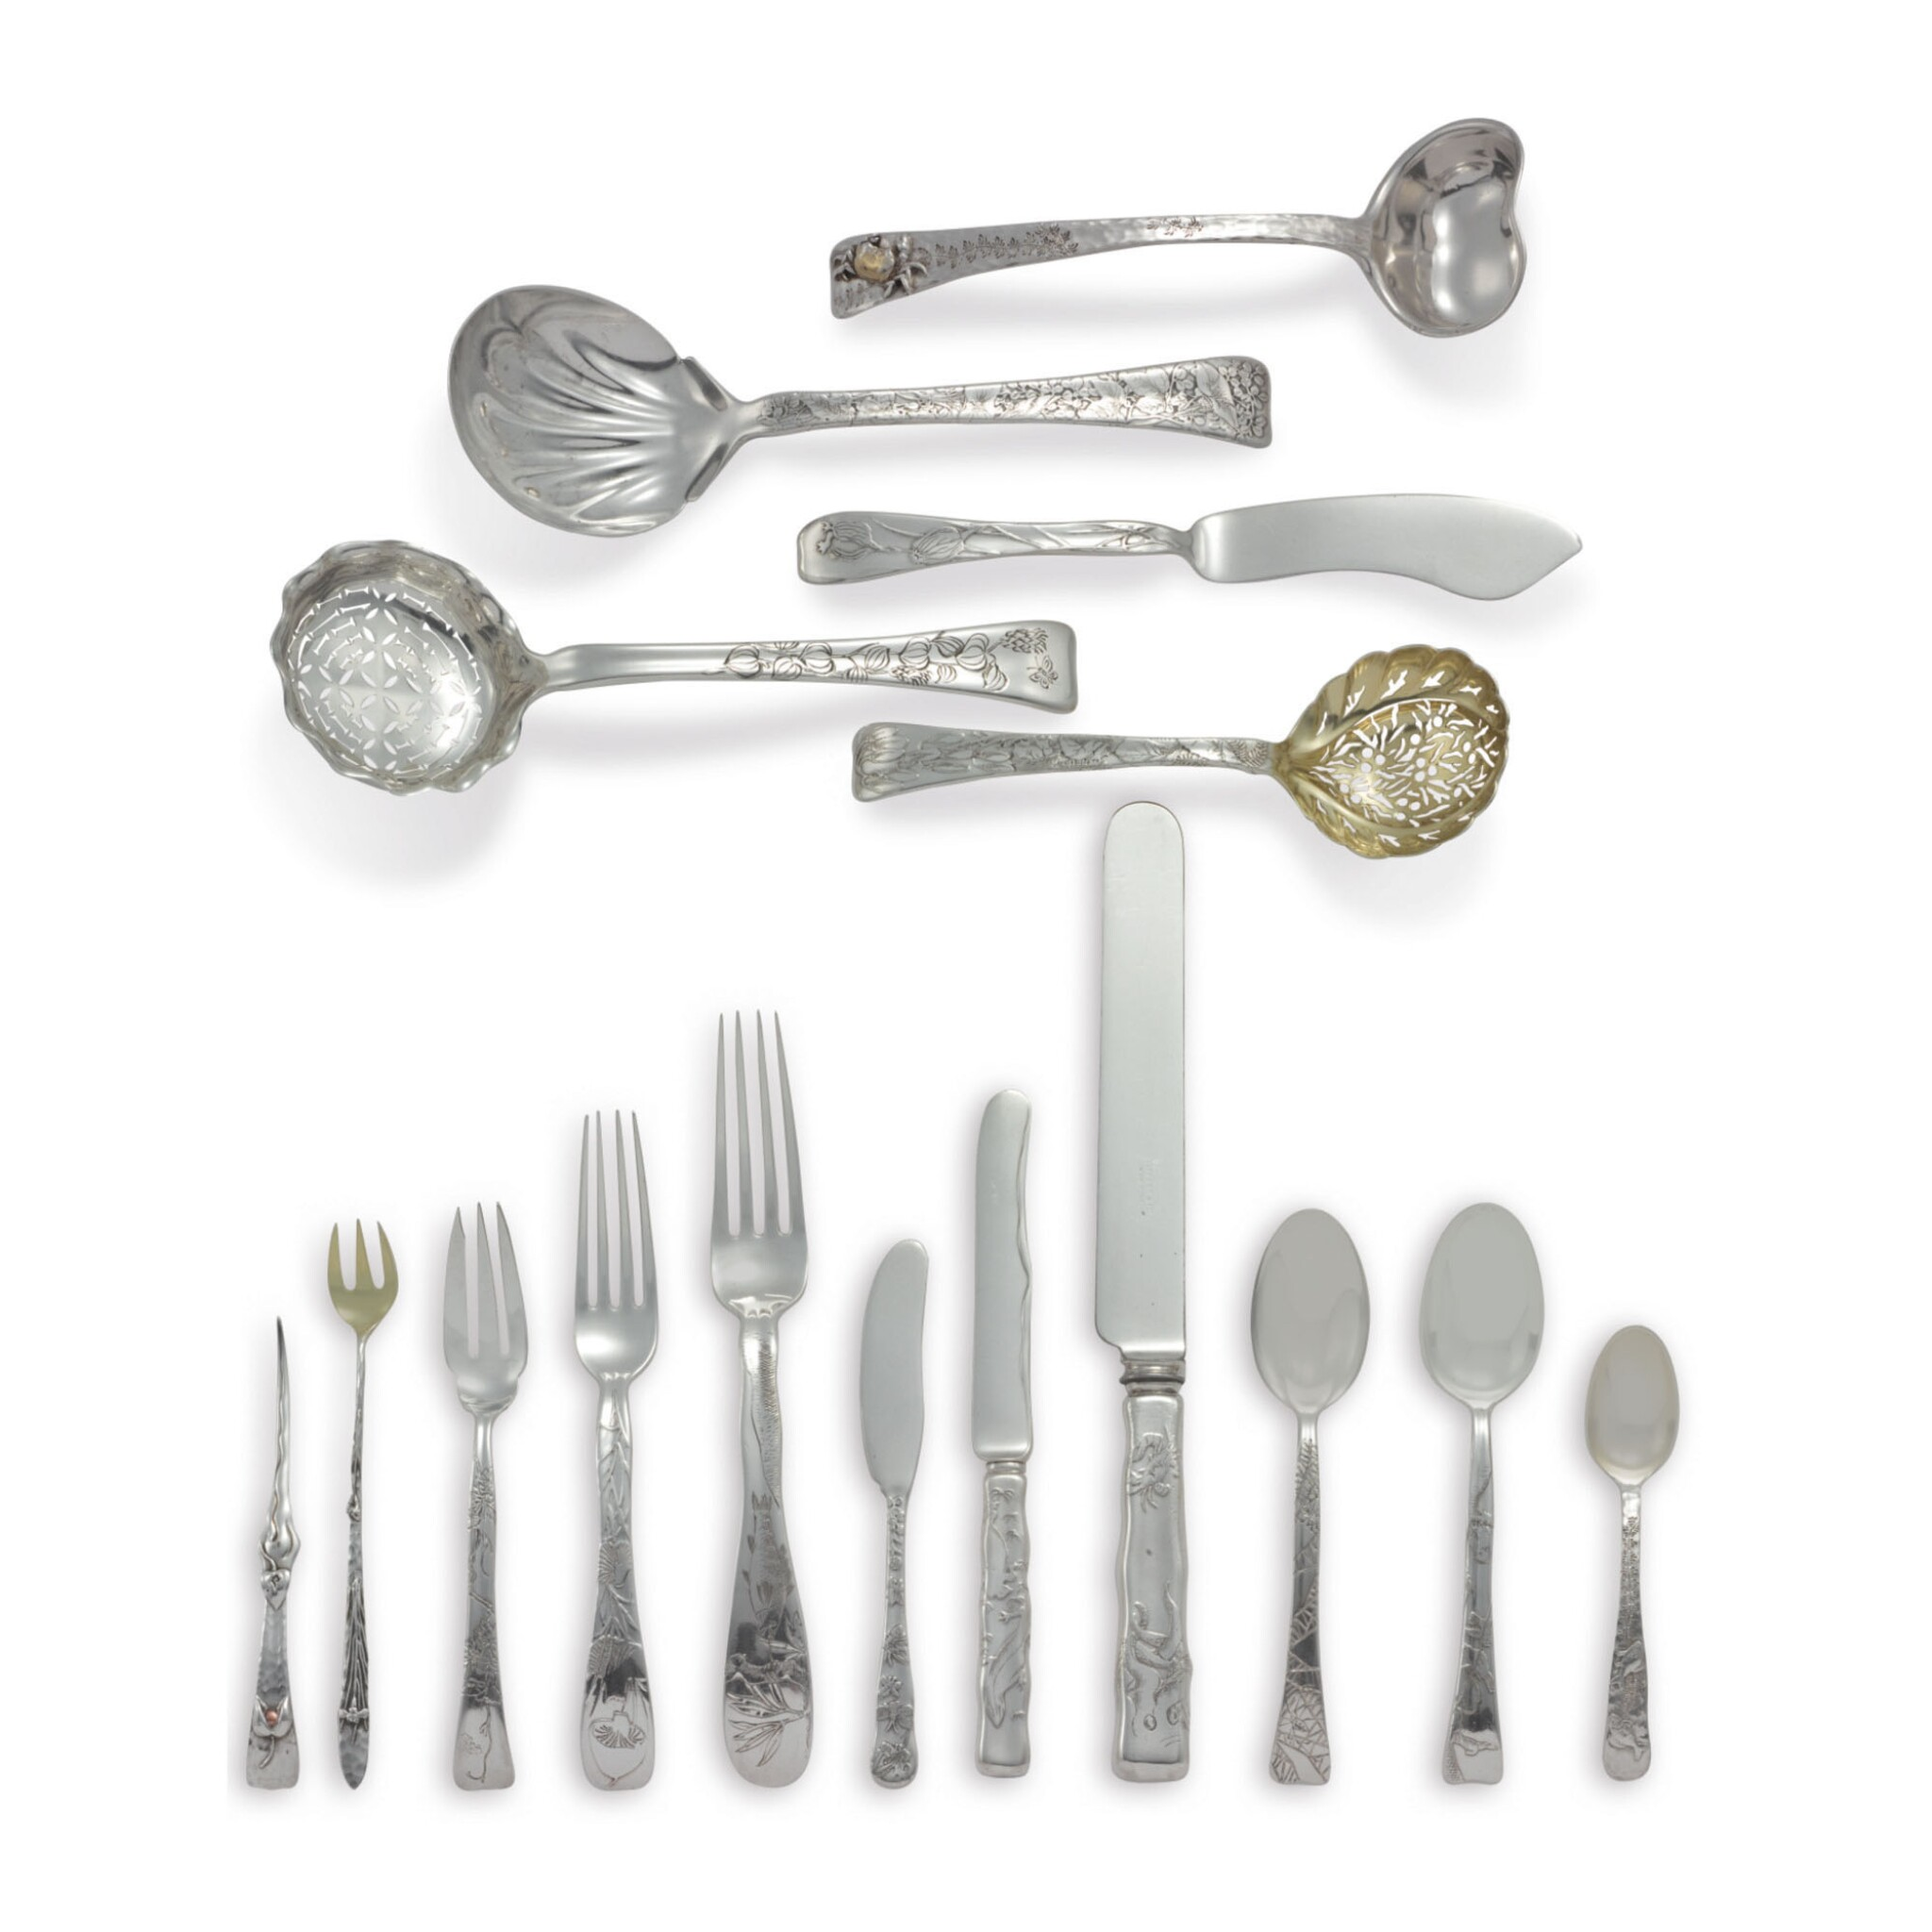 View full screen - View 1 of Lot 1814. AN ASSEMBLED AMERICAN SILVER LAP OVER EDGE FLATWARE SERVICE, TIFFANY & CO., NEW YORK, LATE 19TH CENTURY.